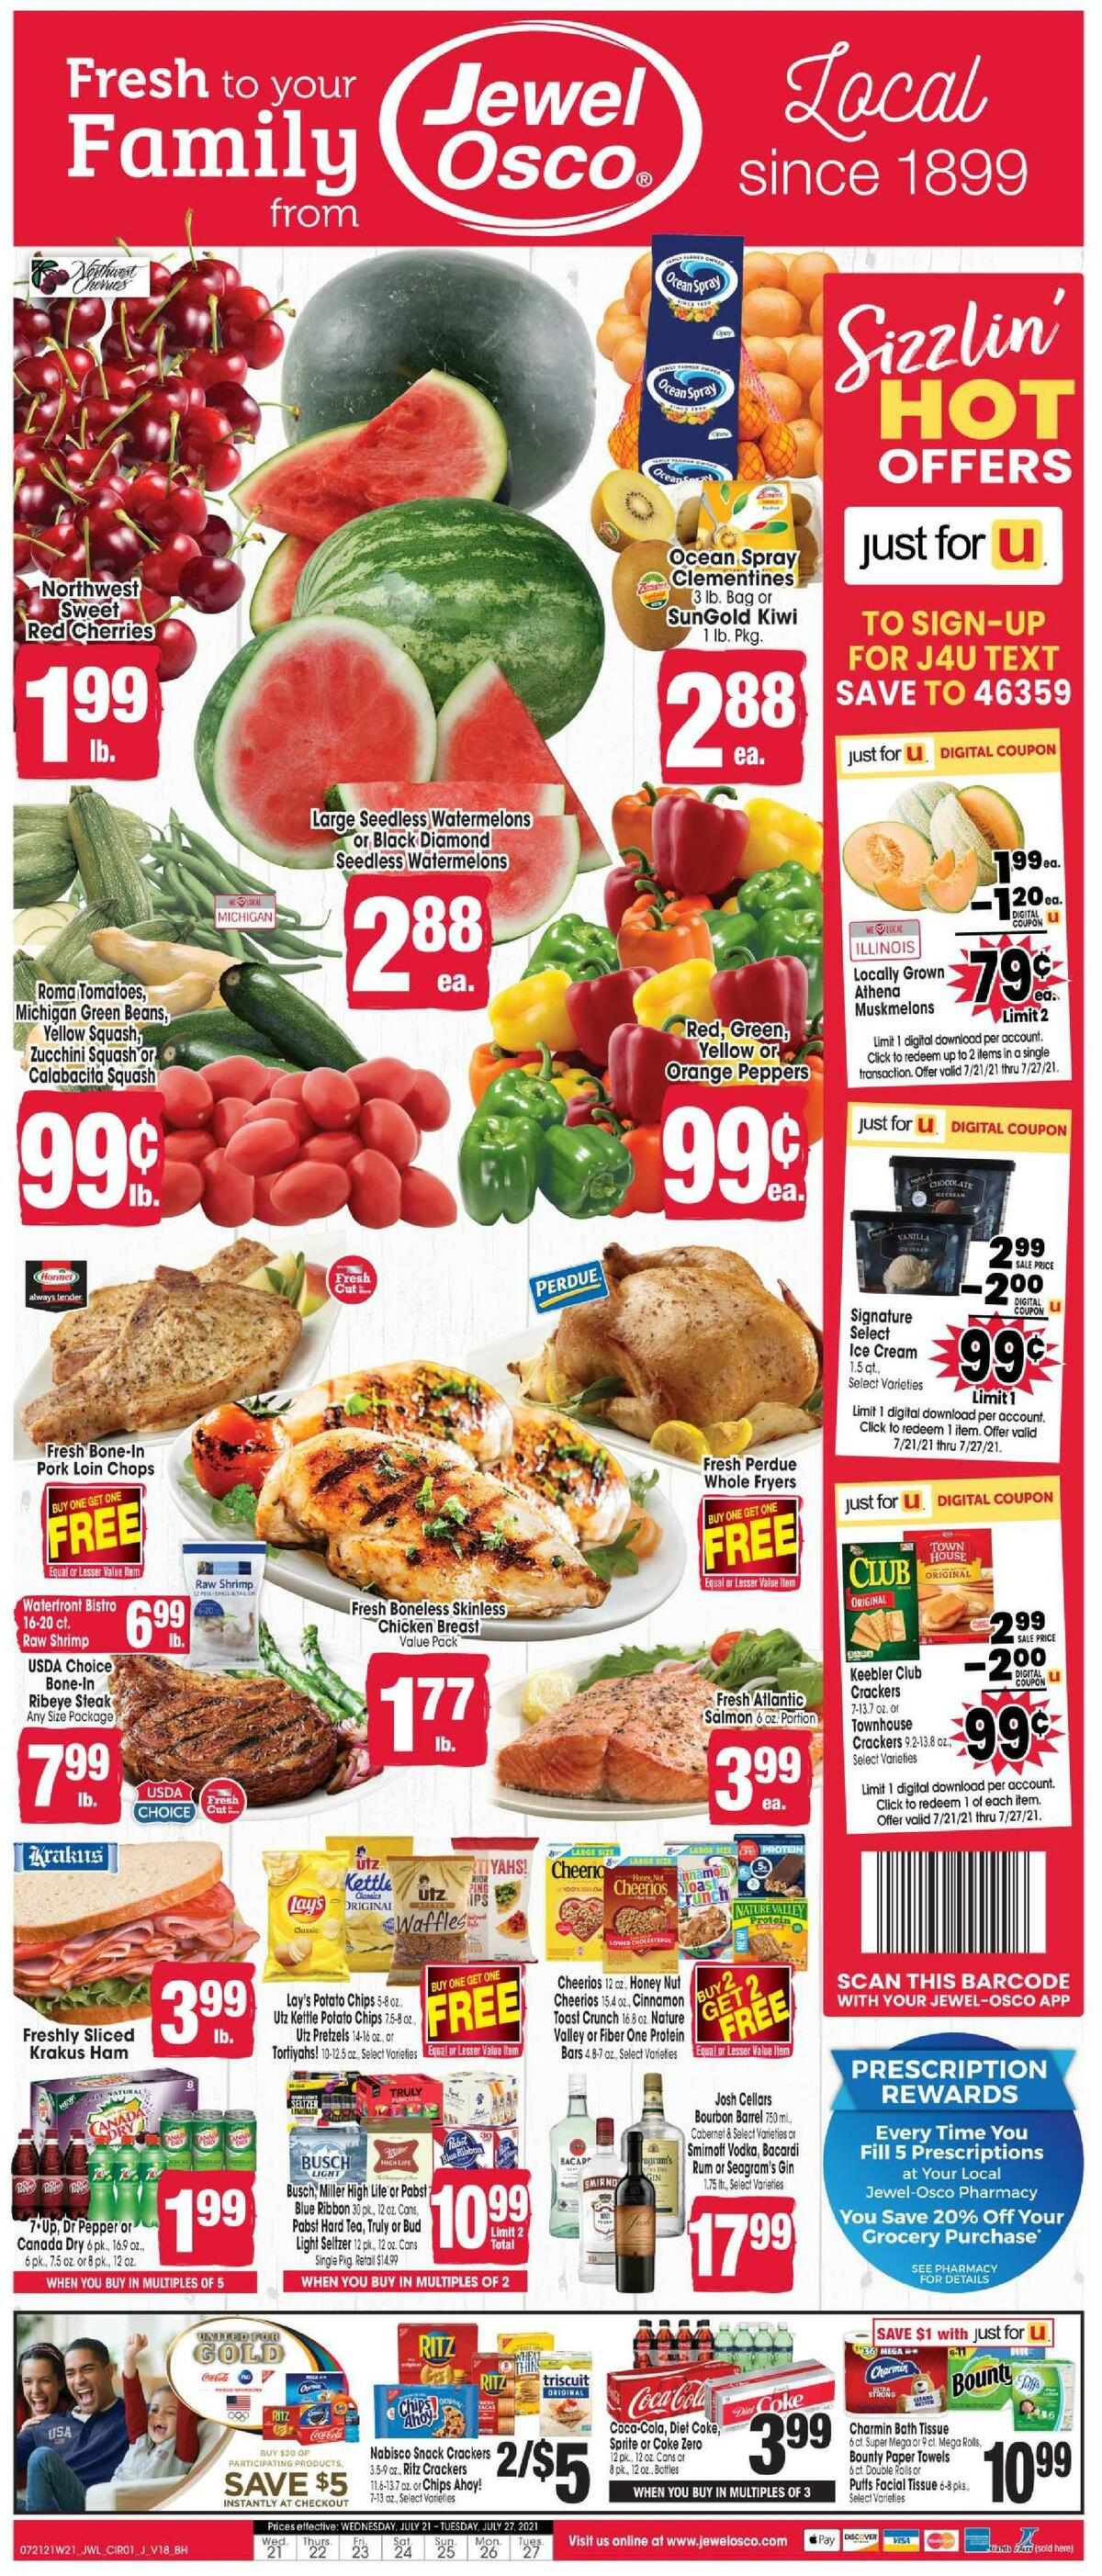 Jewel Osco Weekly Ad from July 21